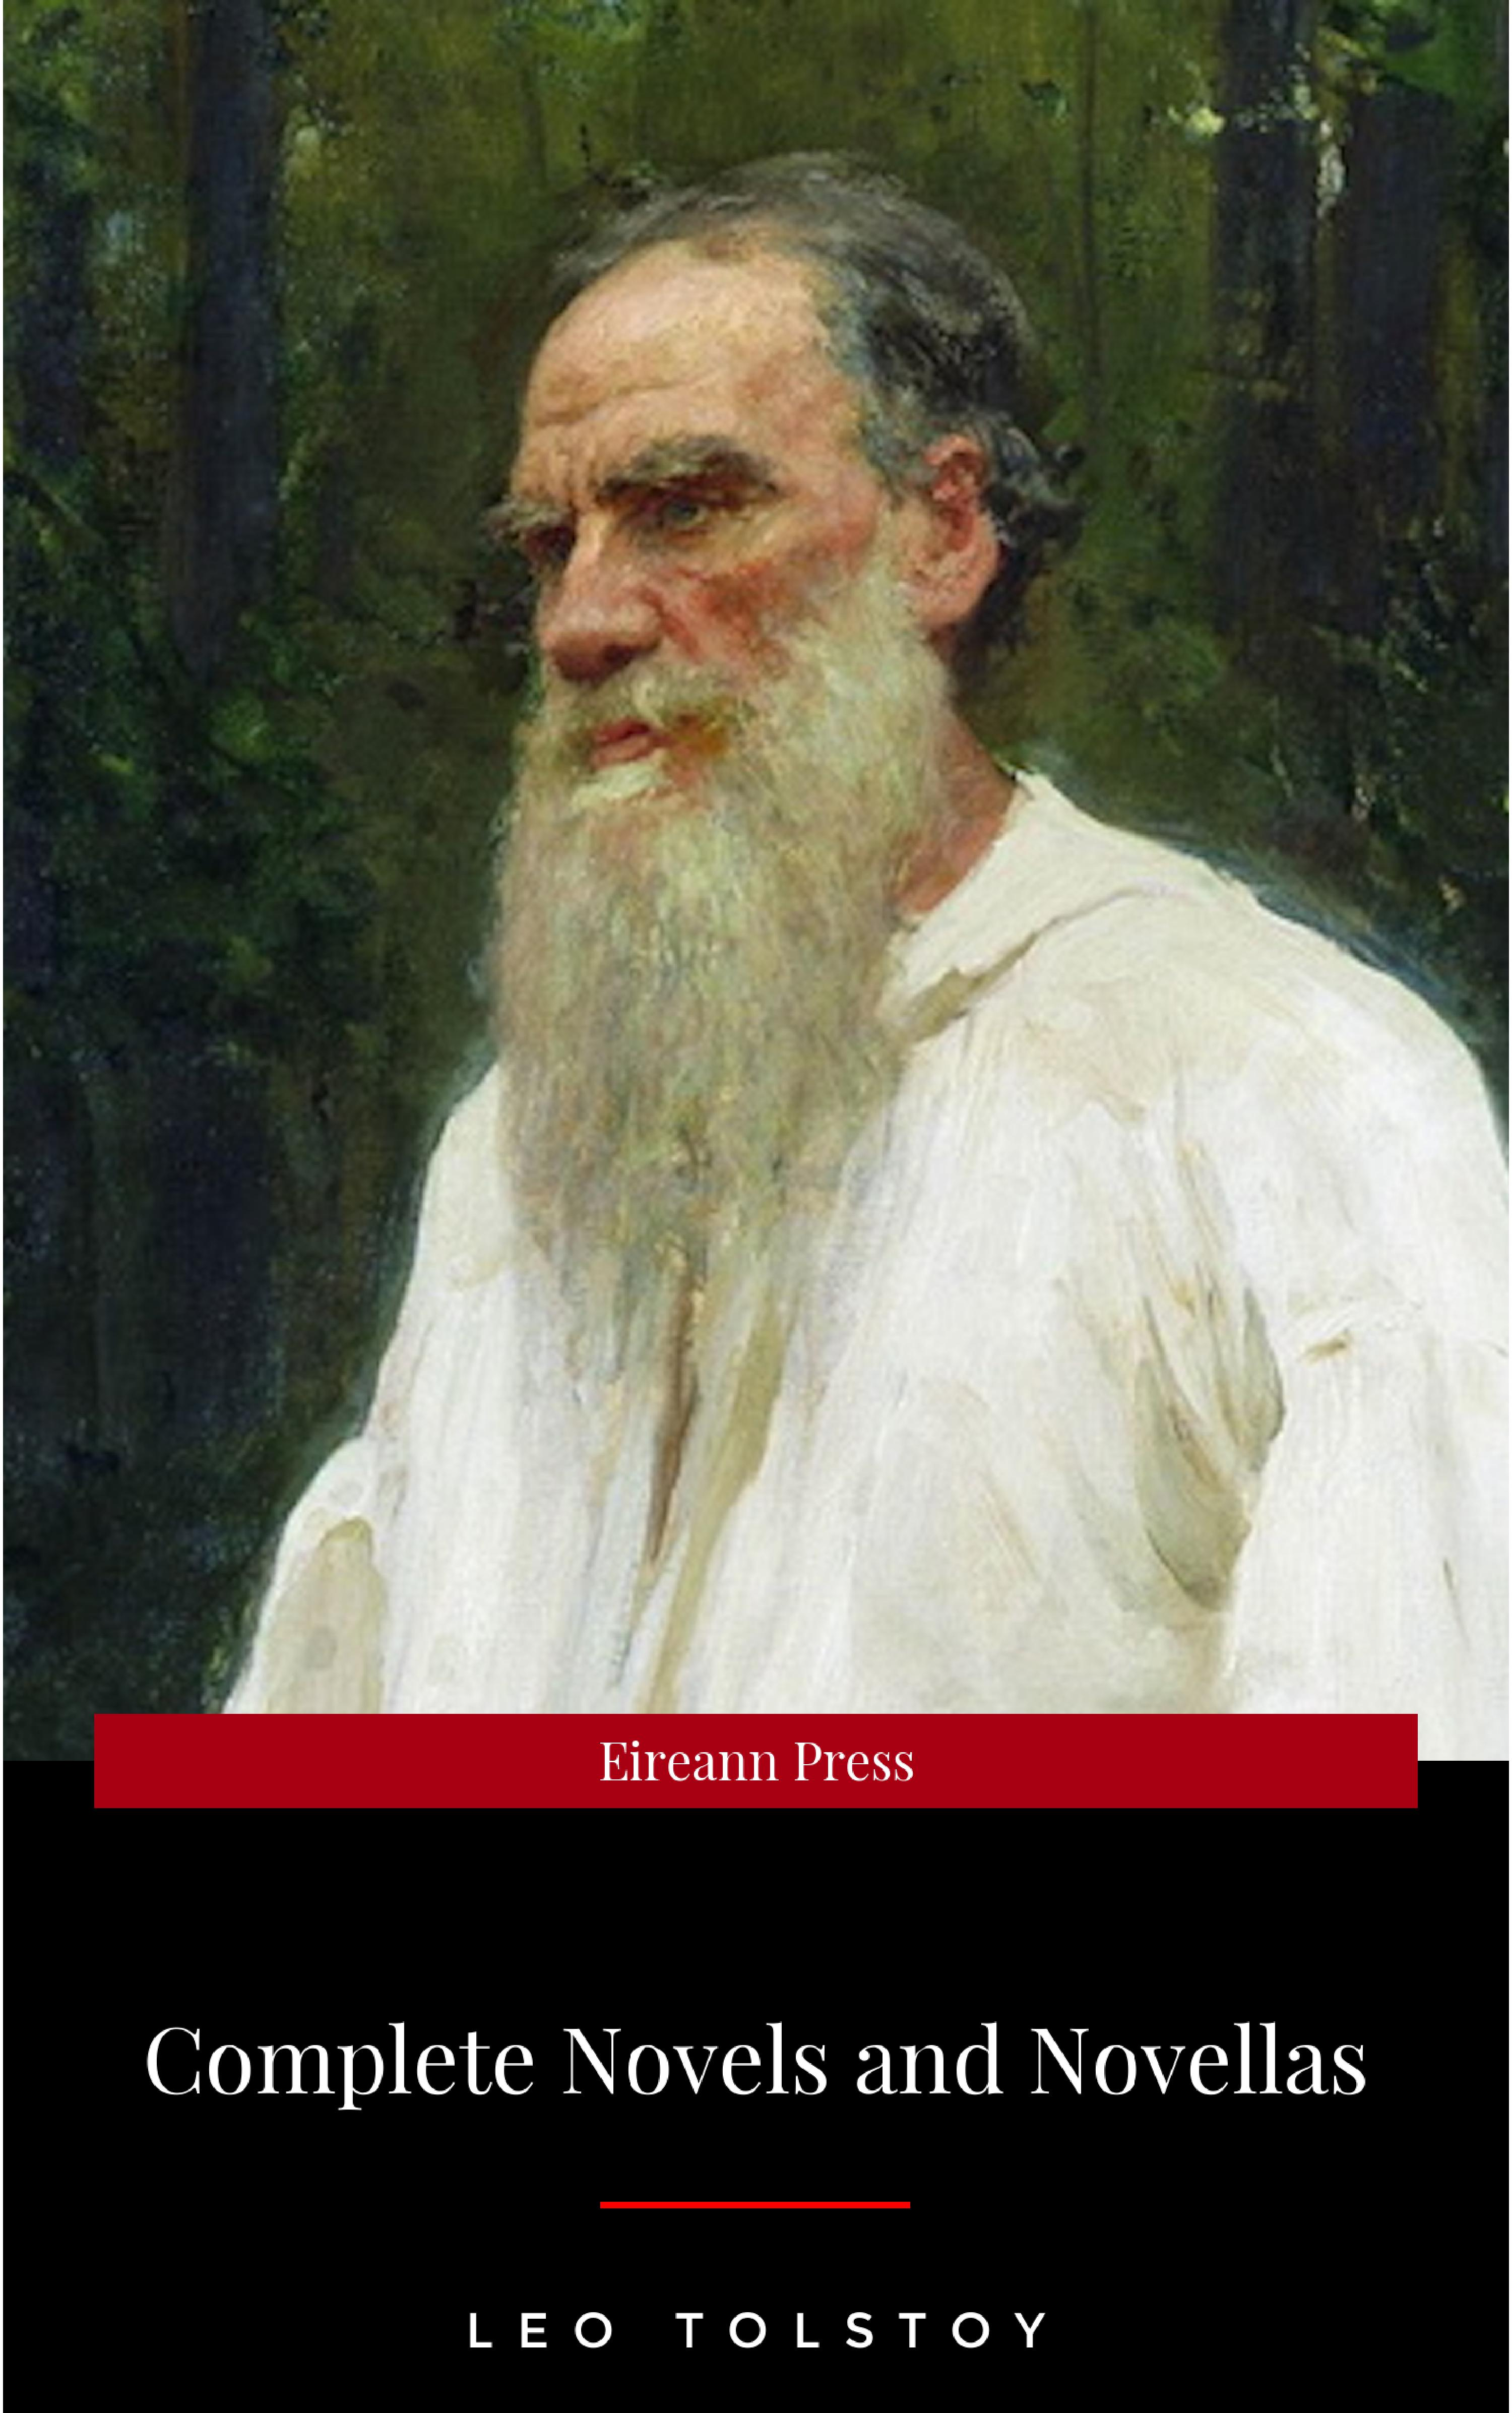 Leo Tolstoy The Complete Novels of Leo Tolstoy in One Premium Edition (World Classics Series): Anna Karenina, War and Peace, Resurrection, Childhood, Boyhood, Youth, ... (Including Biographies of the Author) цена